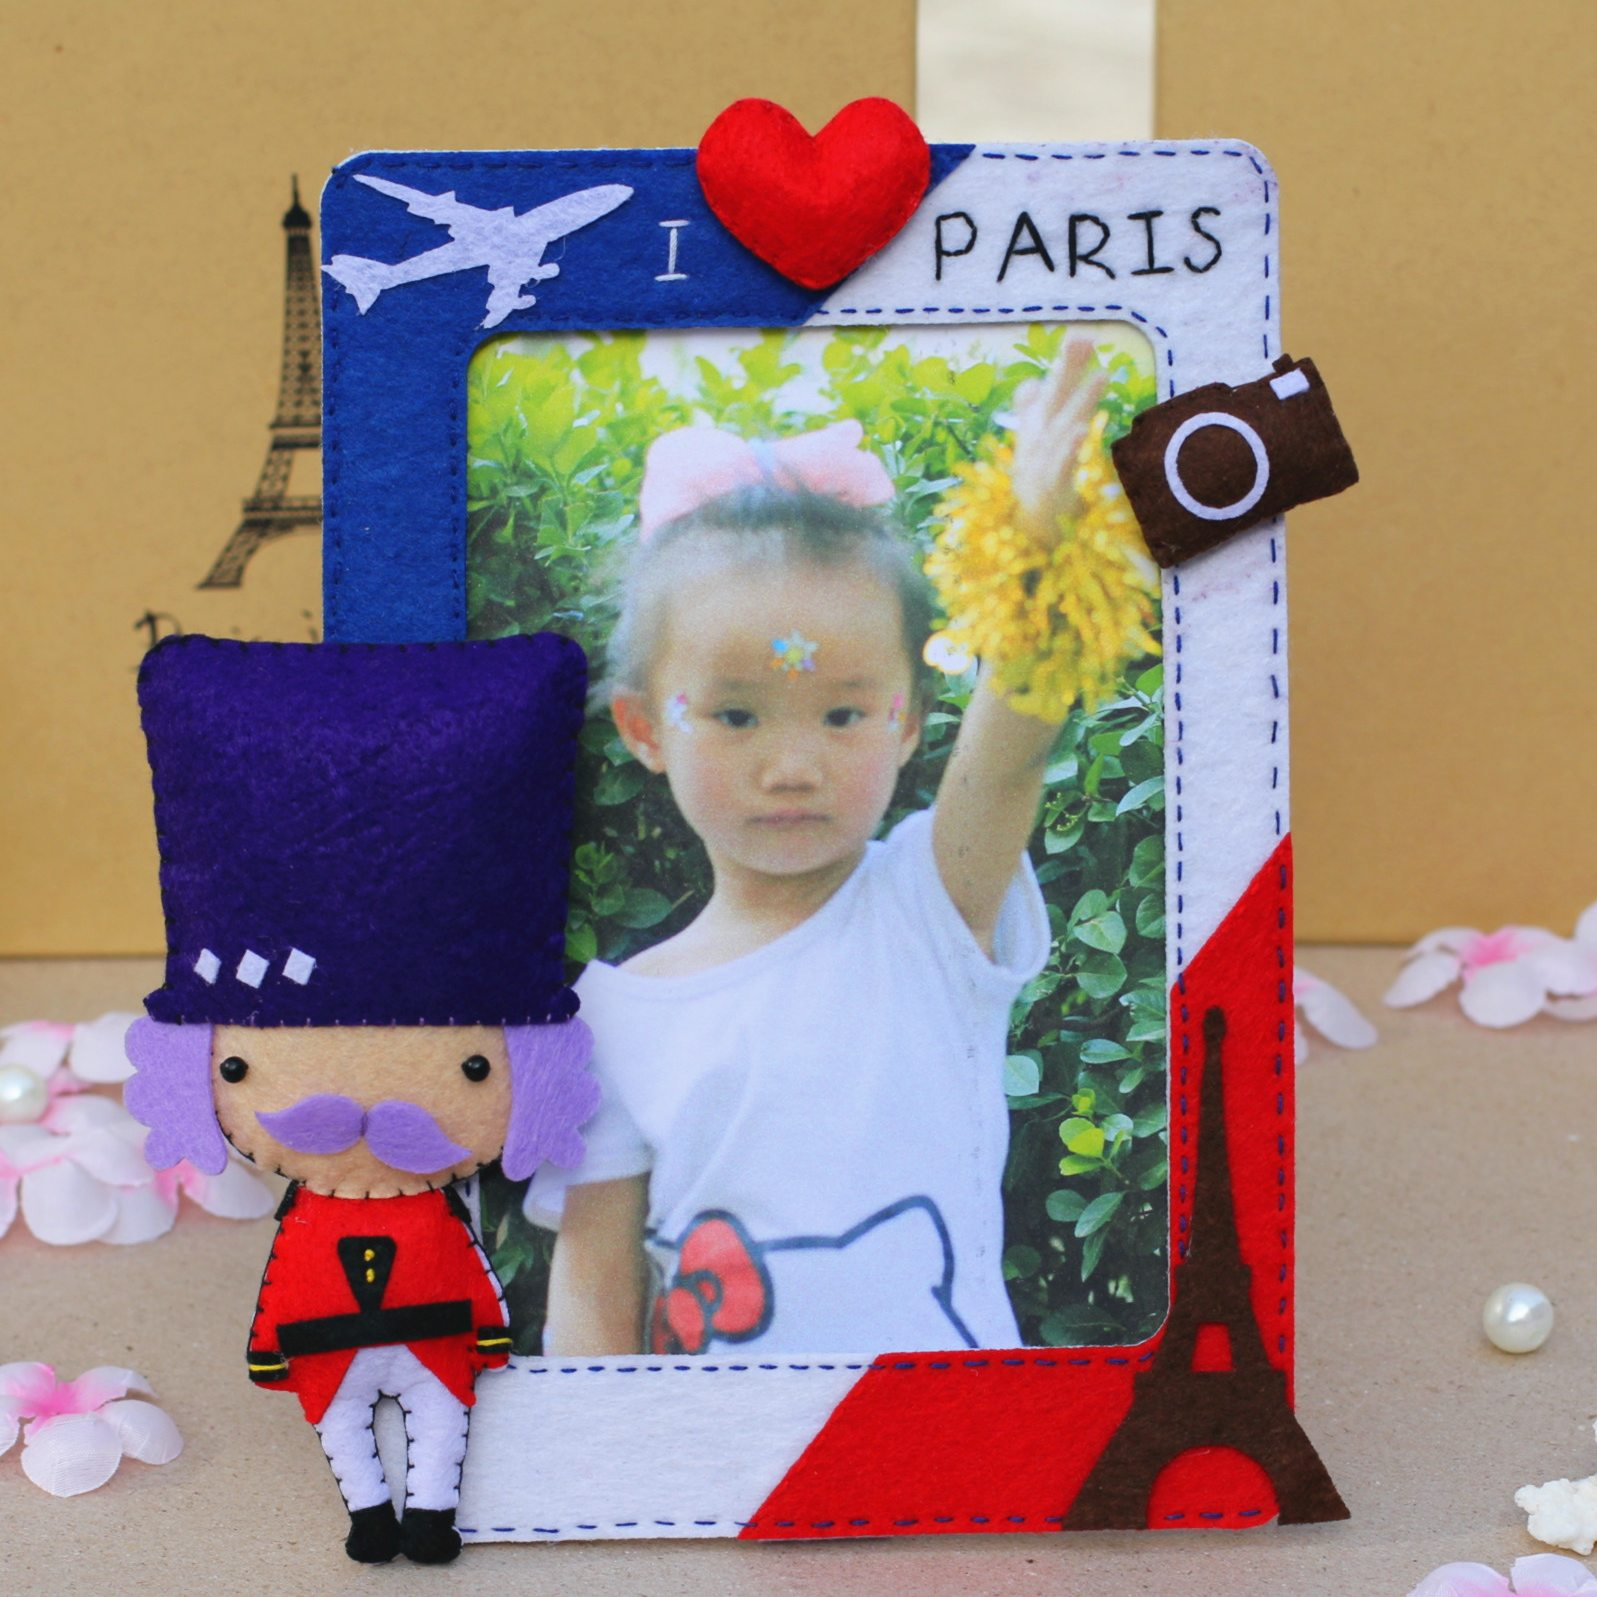 Xin qing original diy handmade cloth material bag free cutting of non woven british style home decoration photo frame